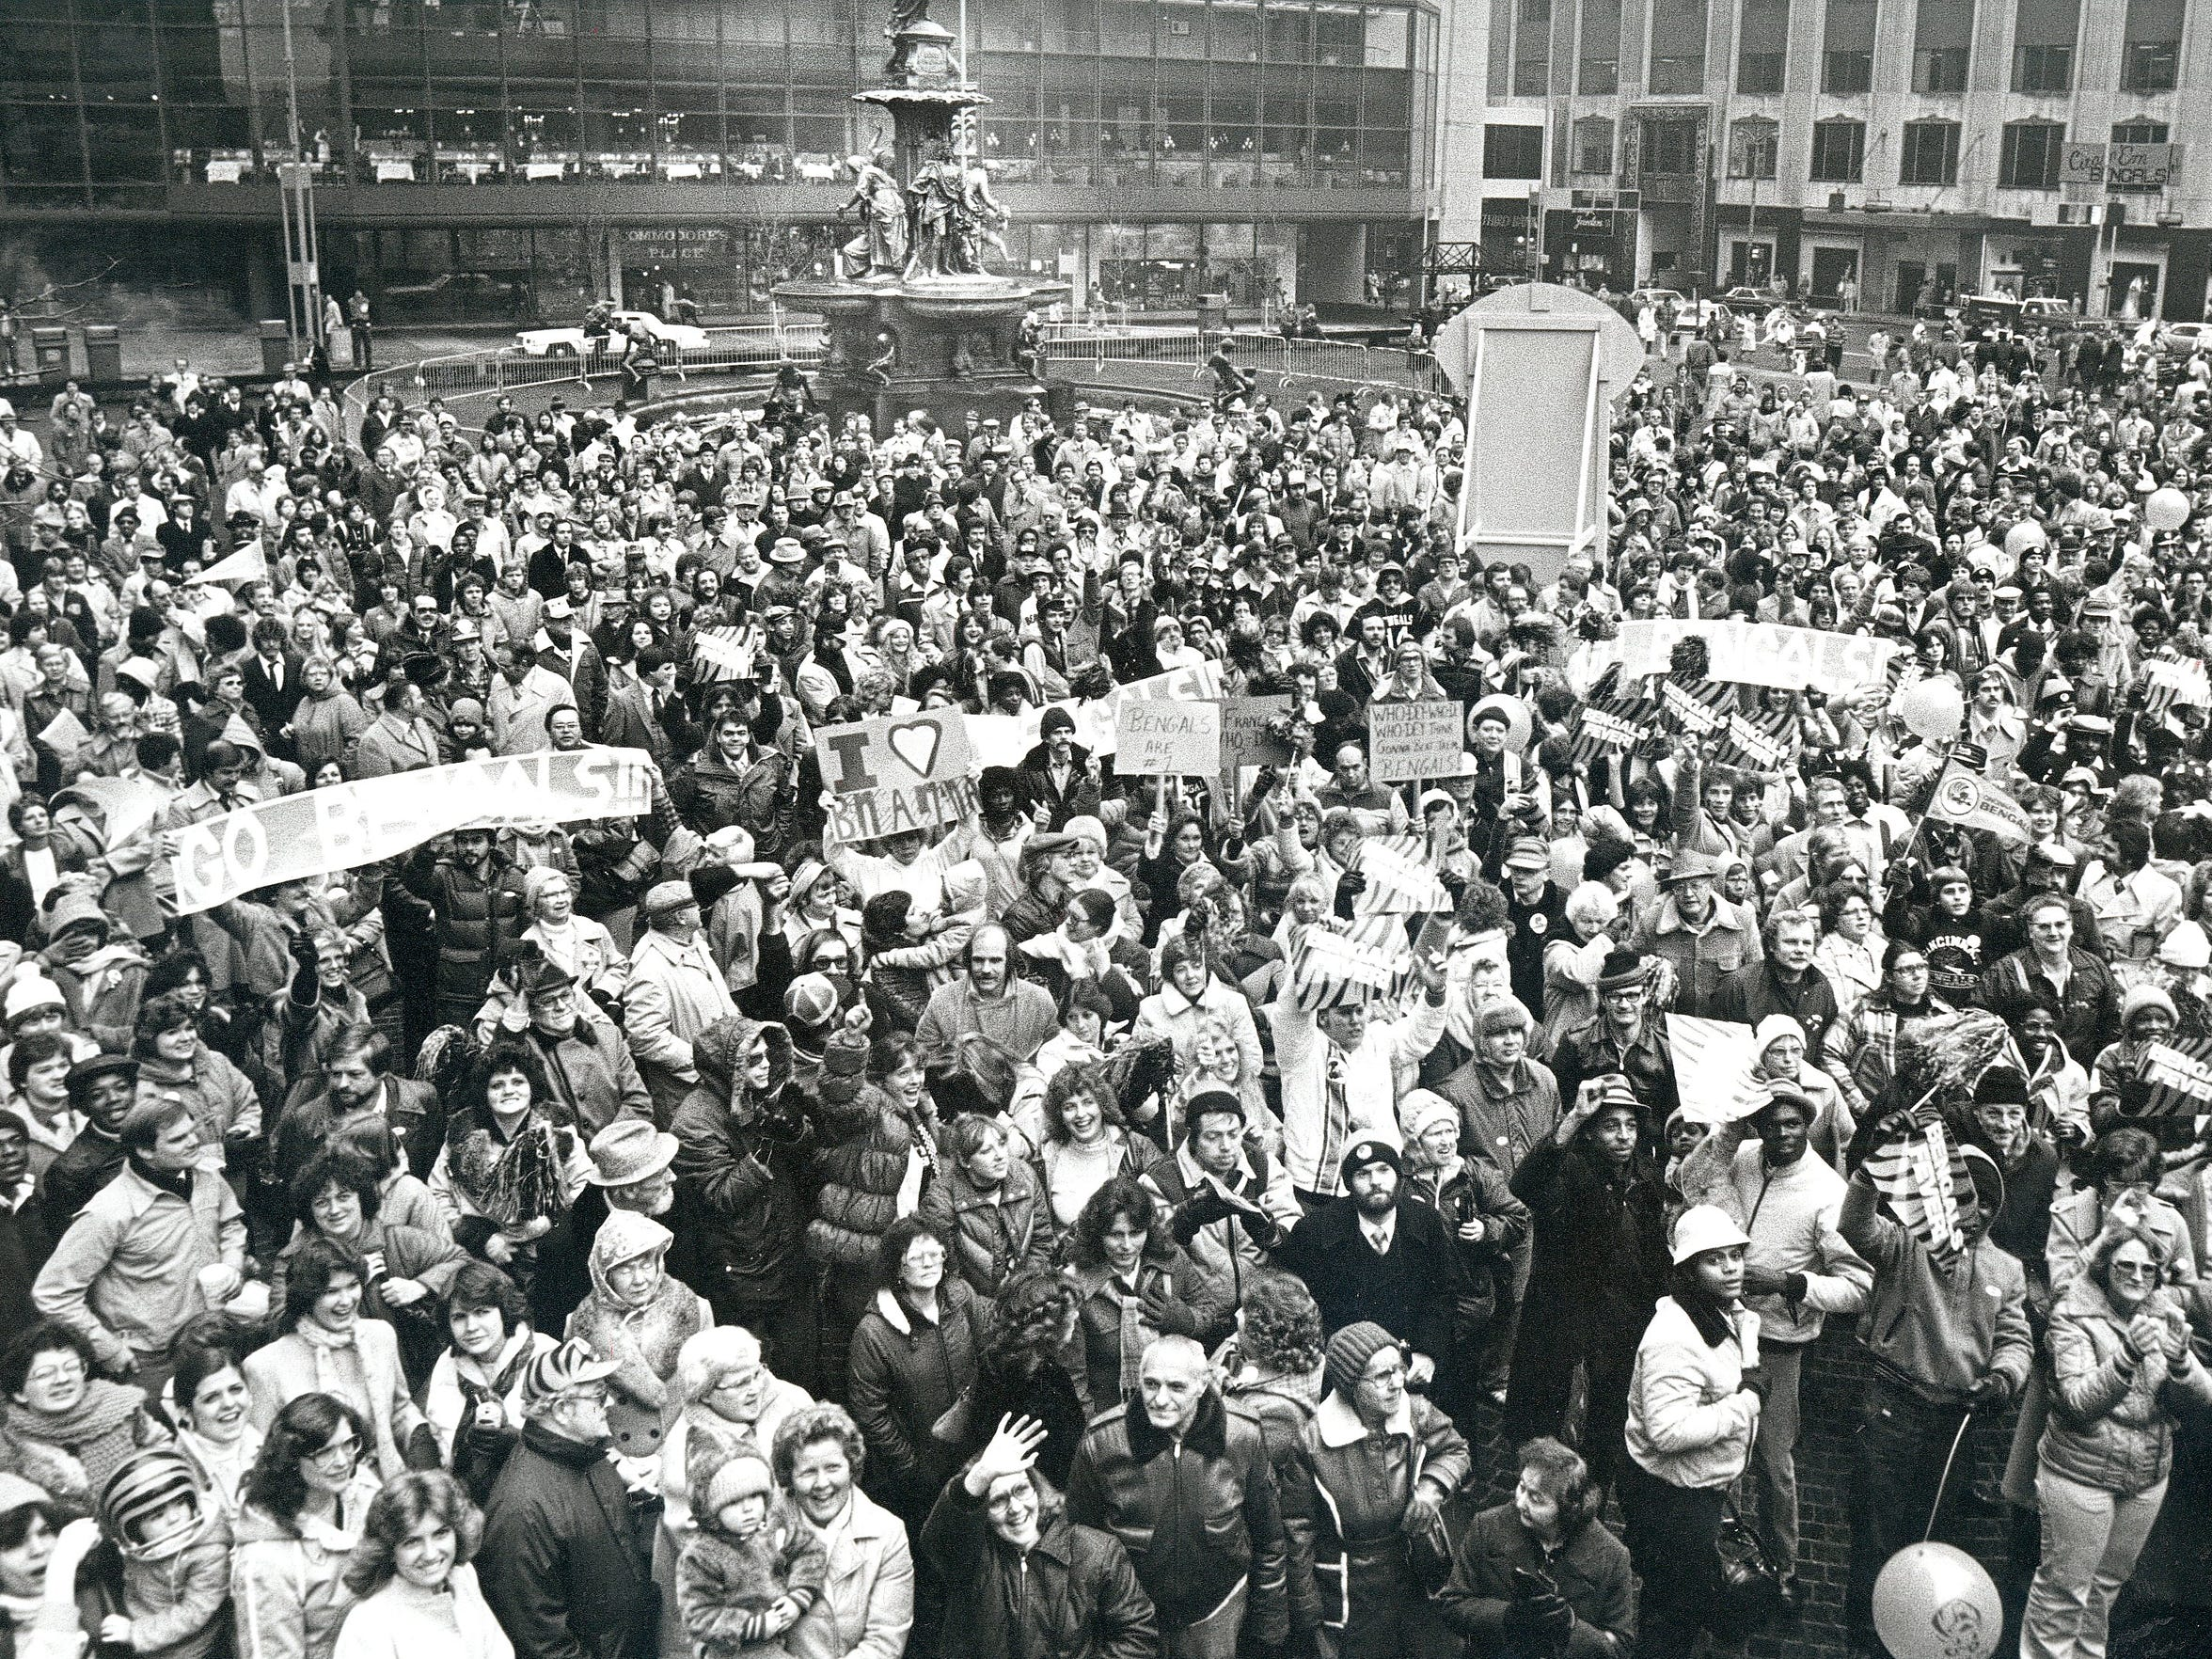 Bengals fans greet the players in Fountain Square after the team's Super Bowl loss in 1982. Even though the 49ers defeated the Bengals, The Enquirer reported that the Who Dey chant was repeated during the rally.